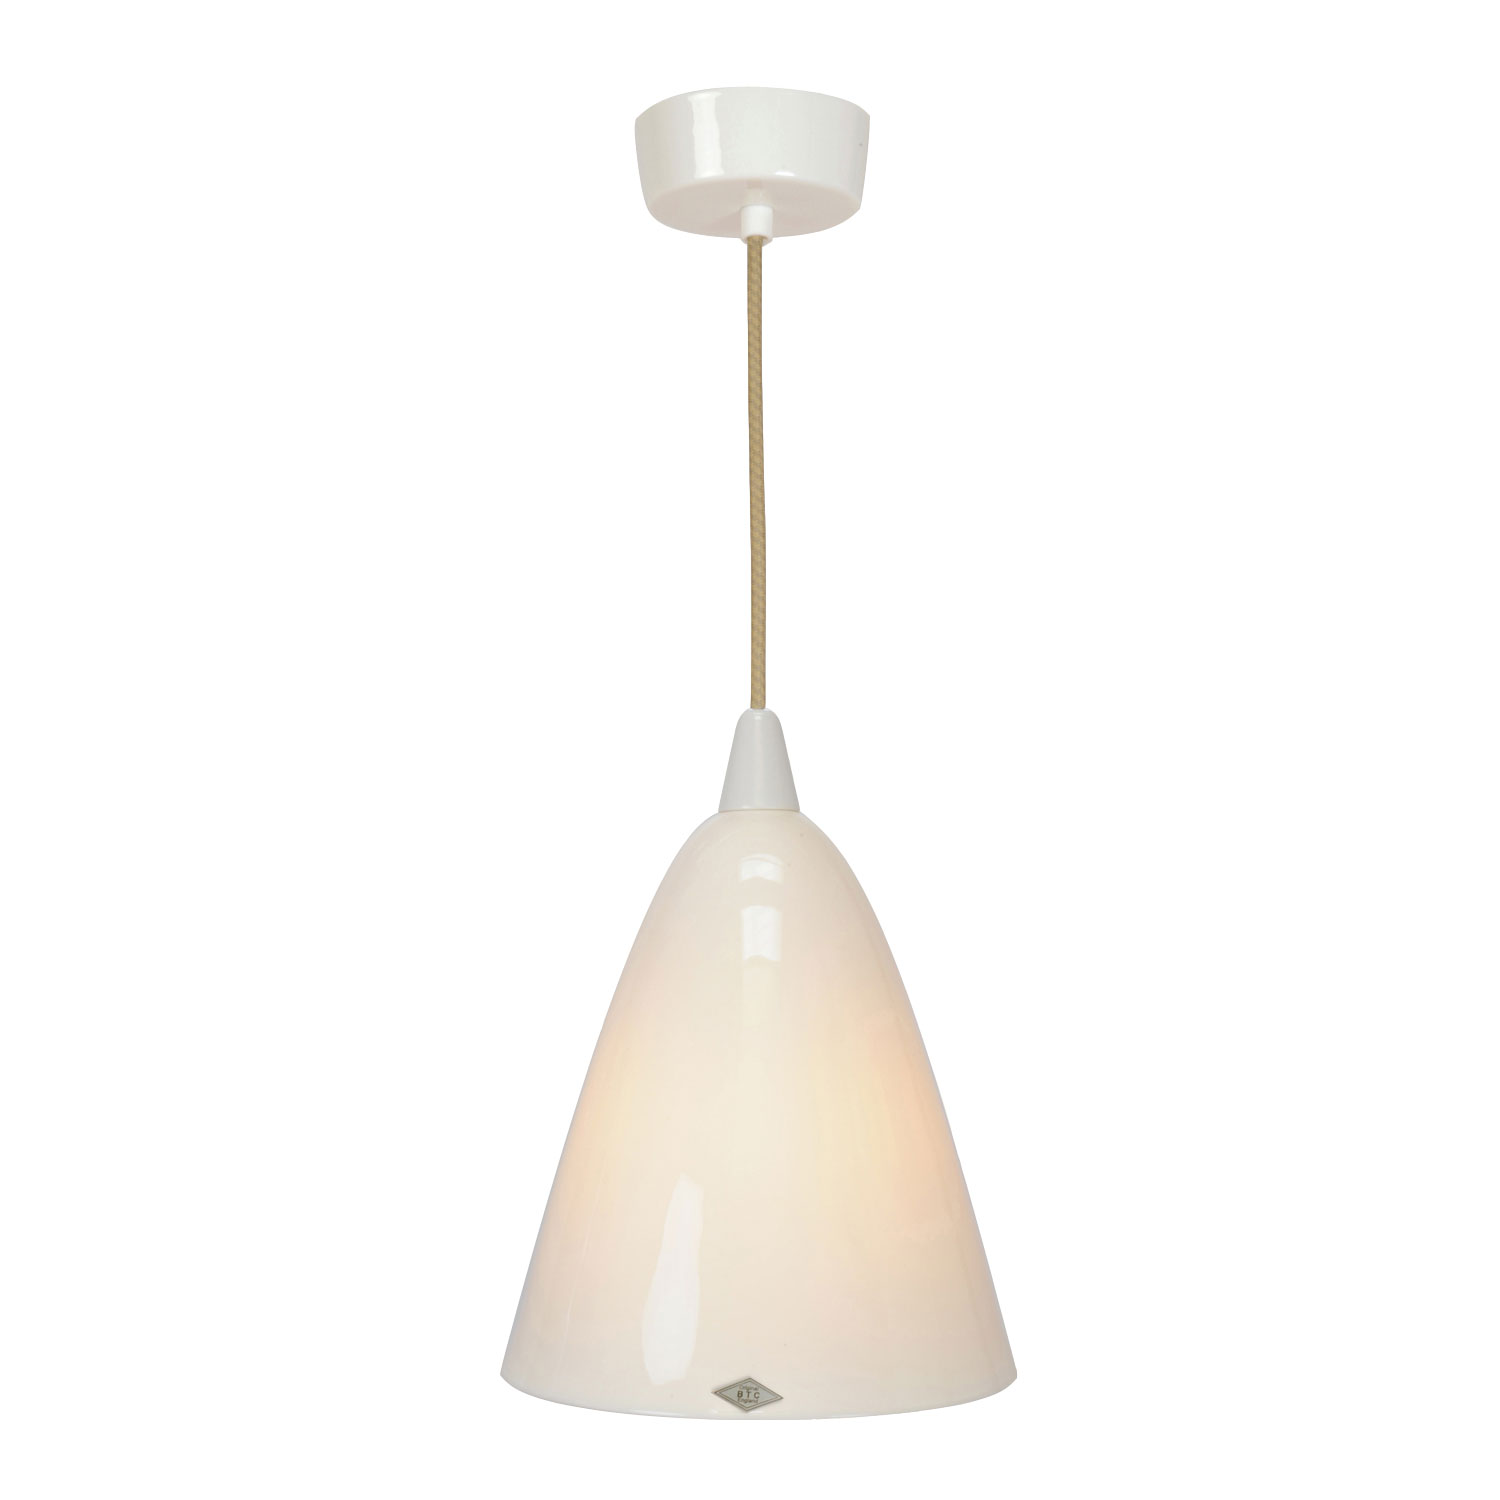 Hector Size 4 Pendant Light, Natural